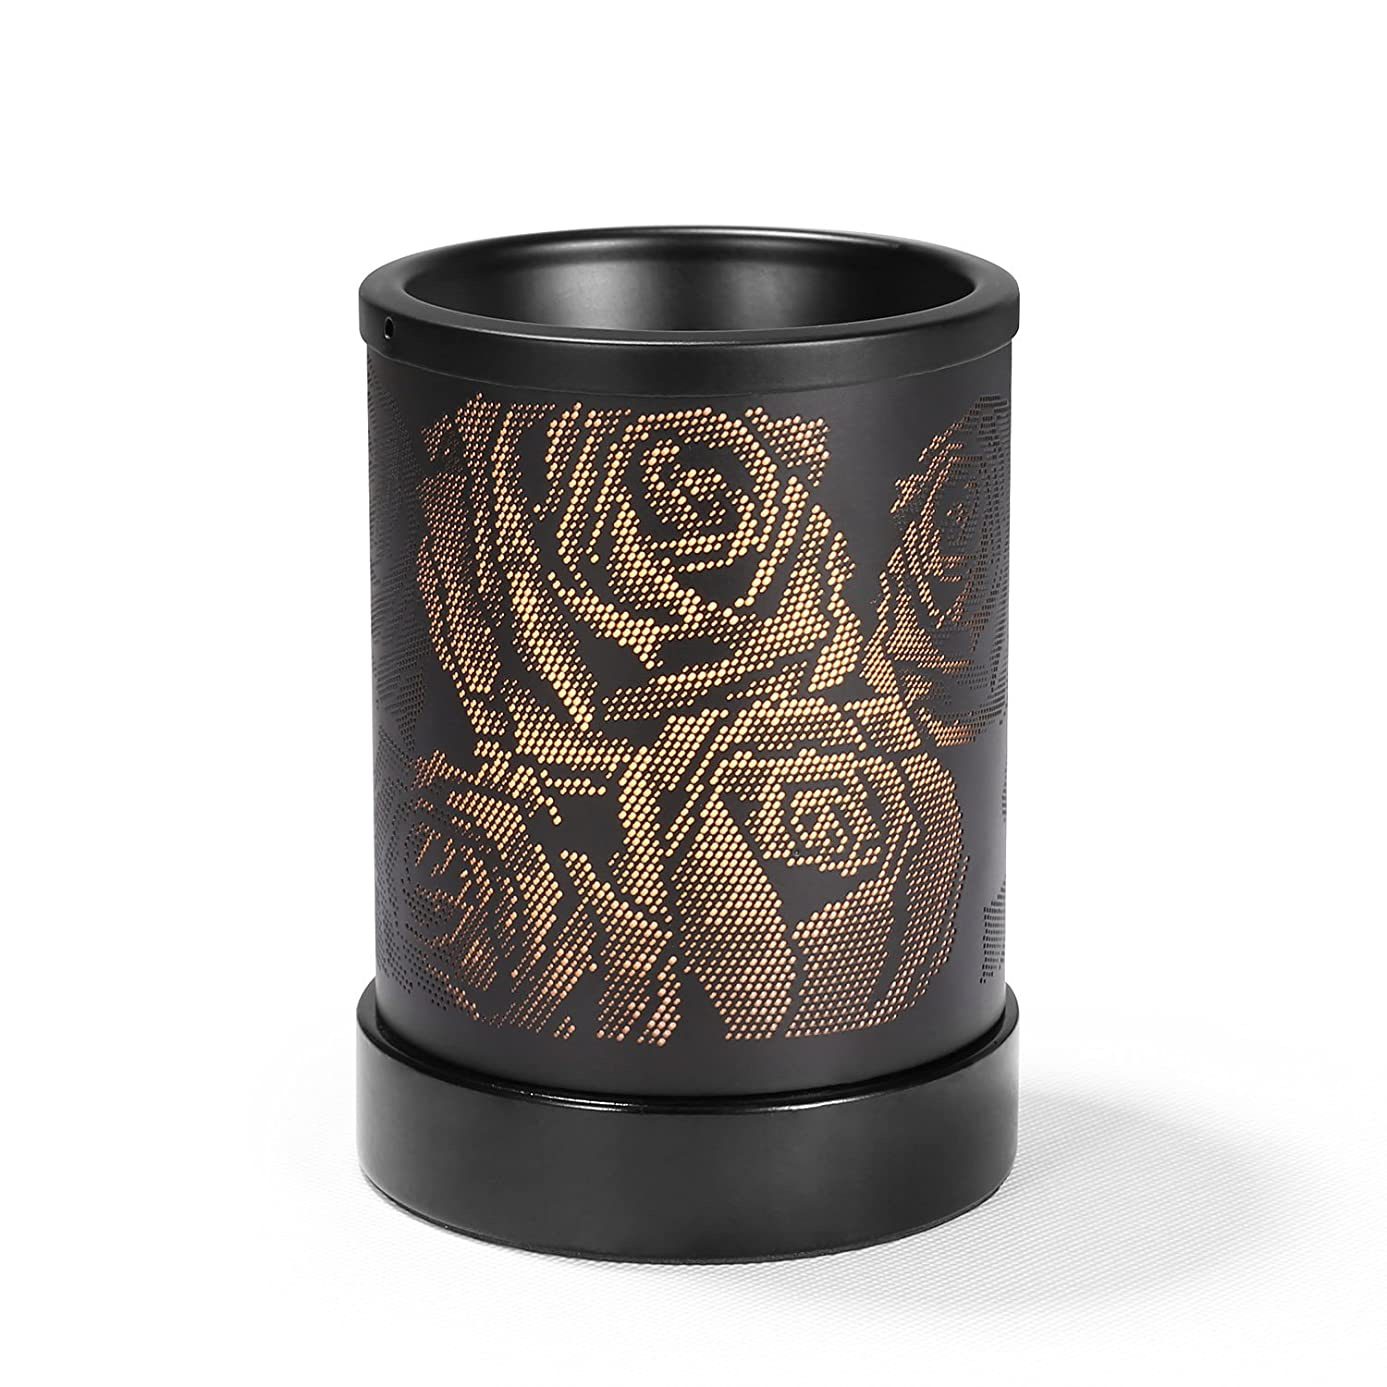 Foromans Scent Wax Melts Warmer Black Rose Style Fragrance Oil Warmer Lamp for Home Décor